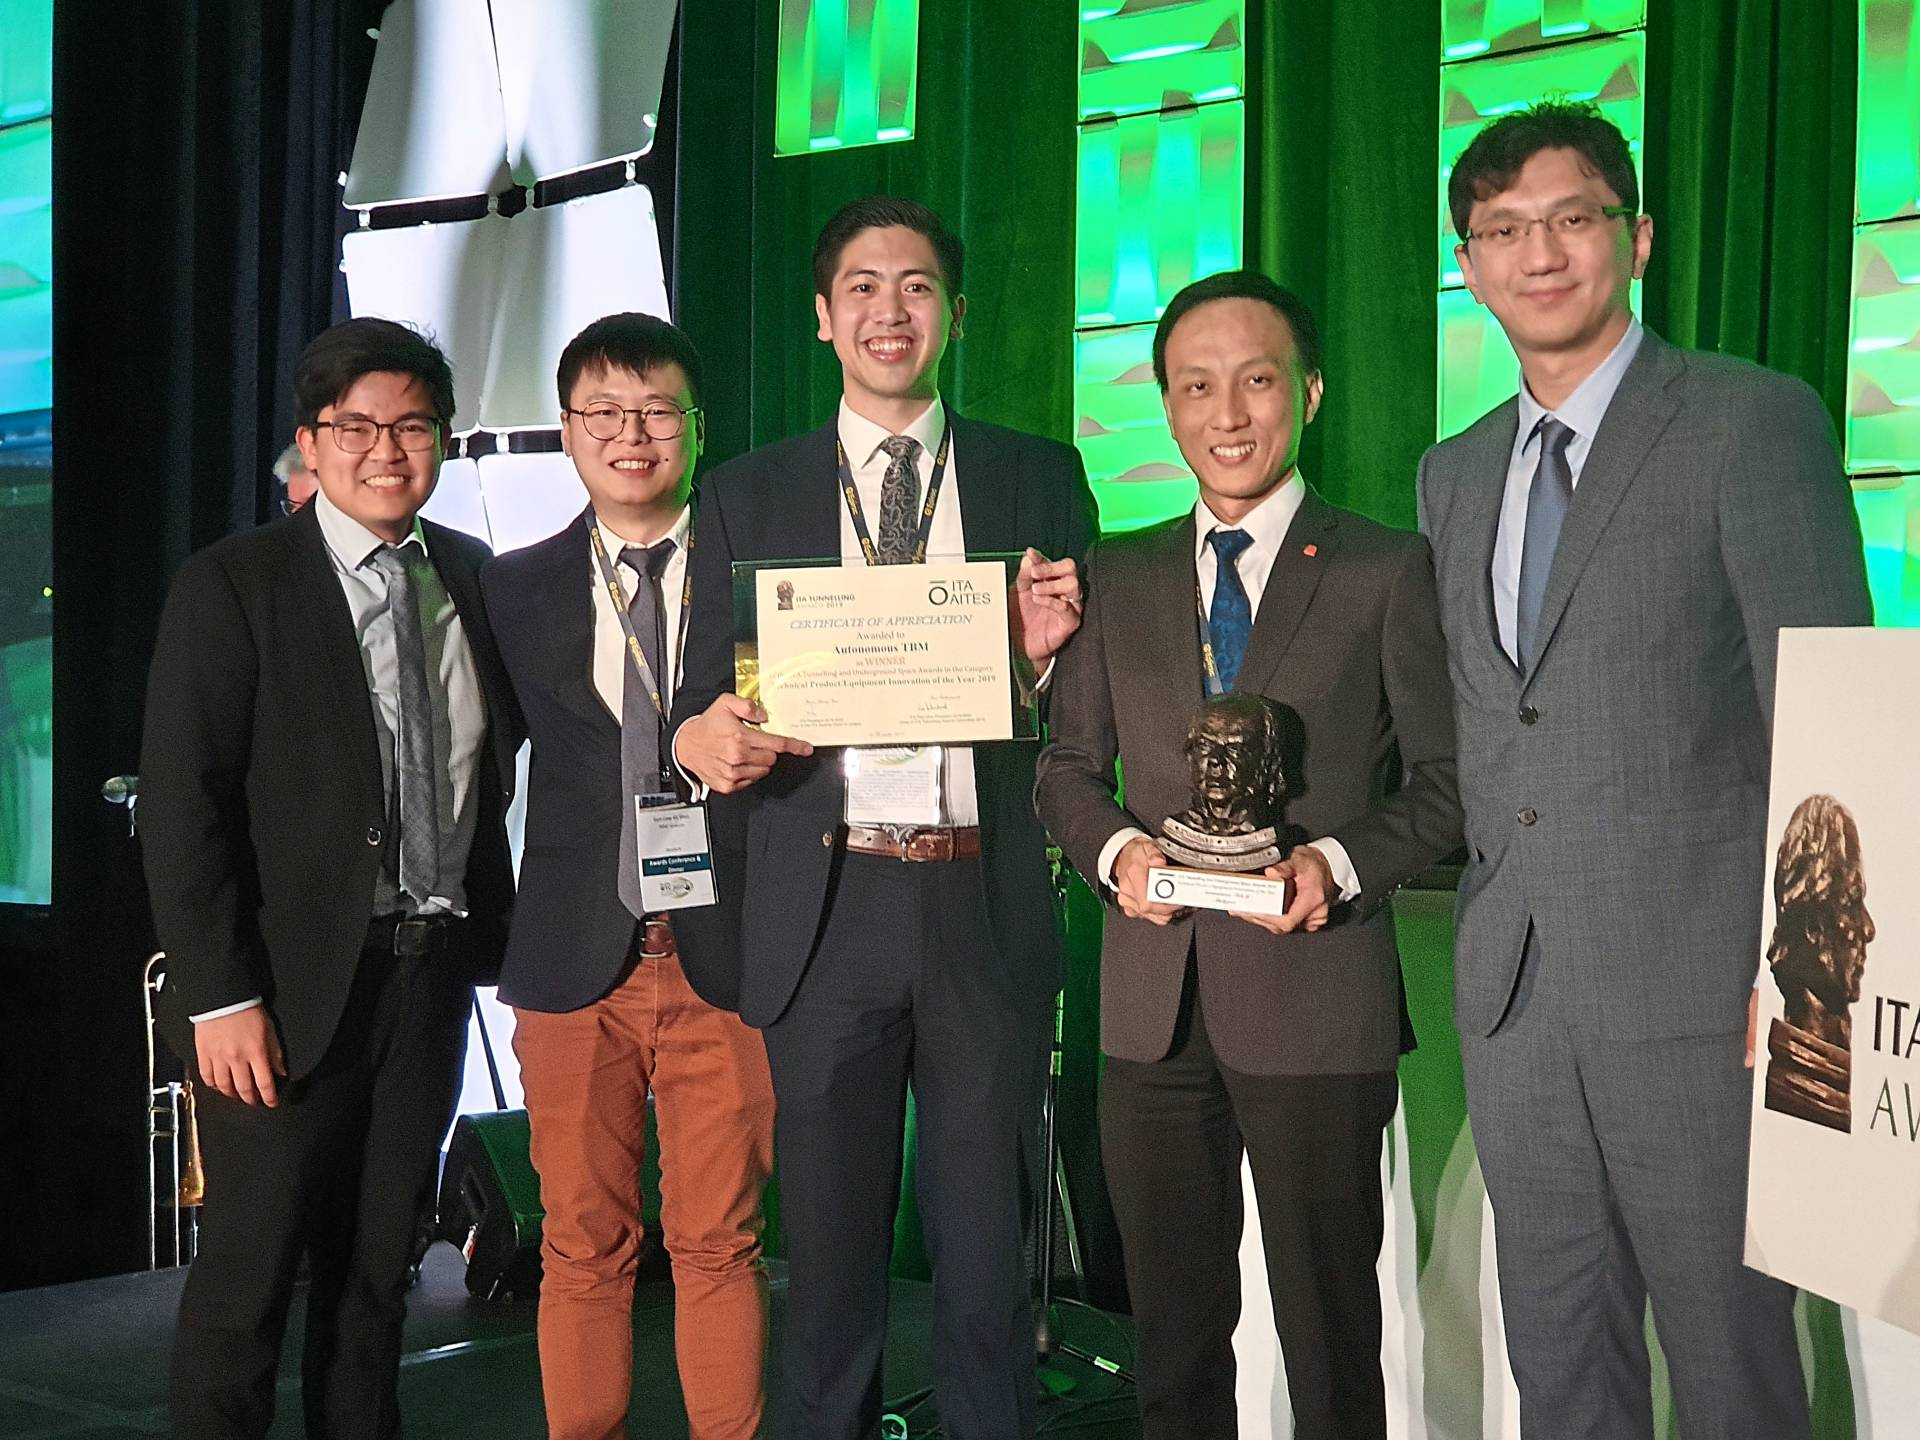 Chin (centre) and Ng (second from right) with their team members after receiving the award in Miami early this week. Other inventors of this system include (from left) John Lim Ji Xiong and Liew Kit Shen. On the far right is ITA executive council member Hangseok Choi.